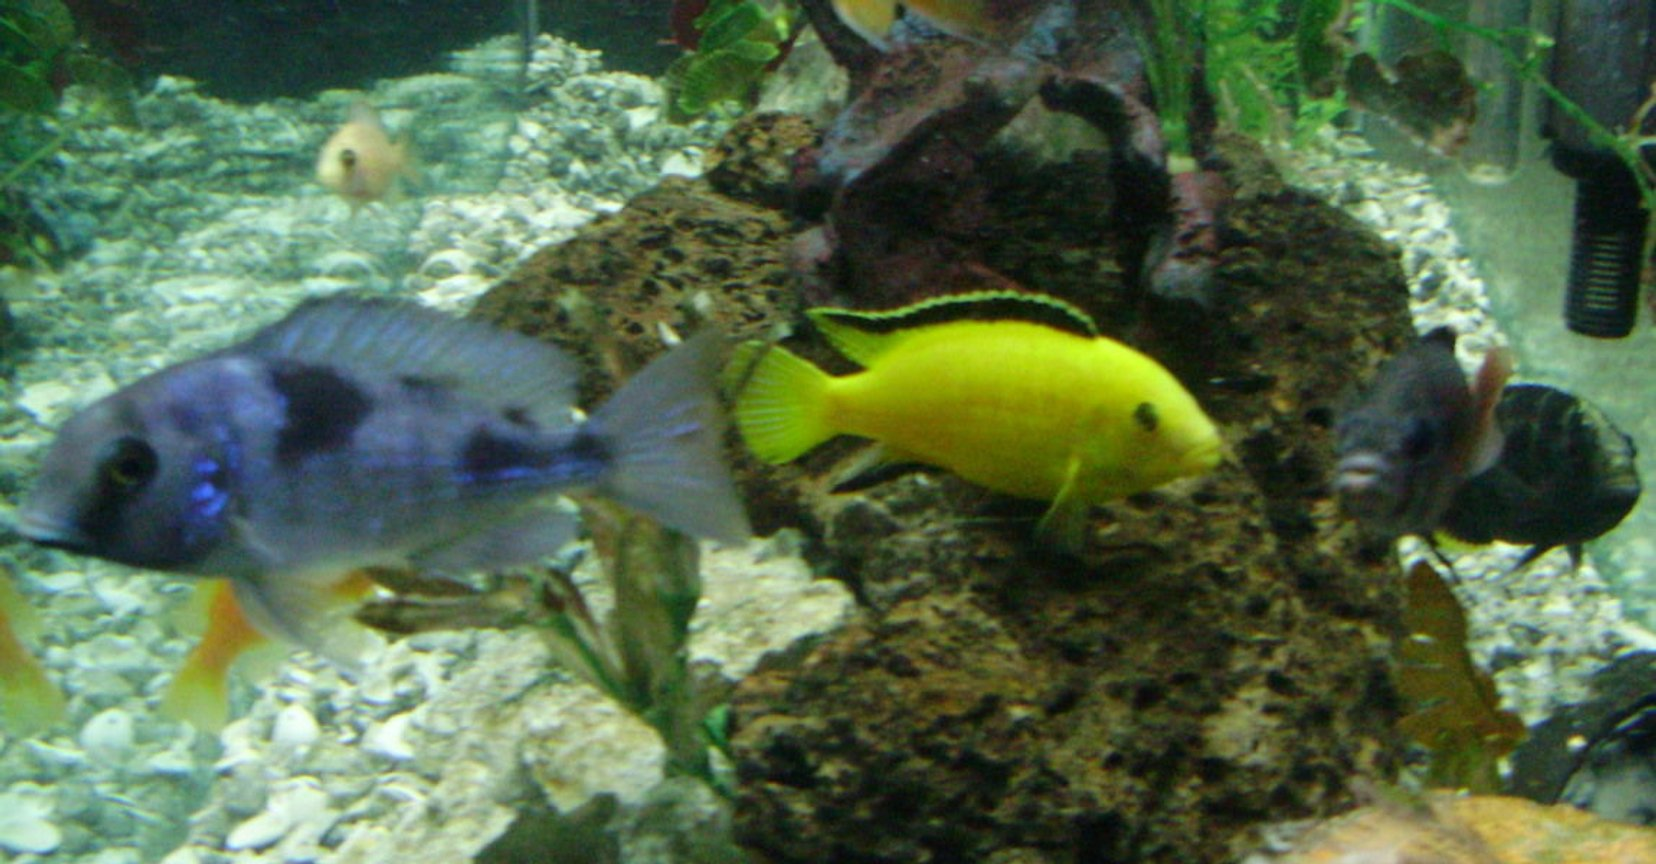 freshwater fish - labidochromis caeruleus - electric yellow cichlid stocking in 70 gallons tank - yellow lab named stripe and friends